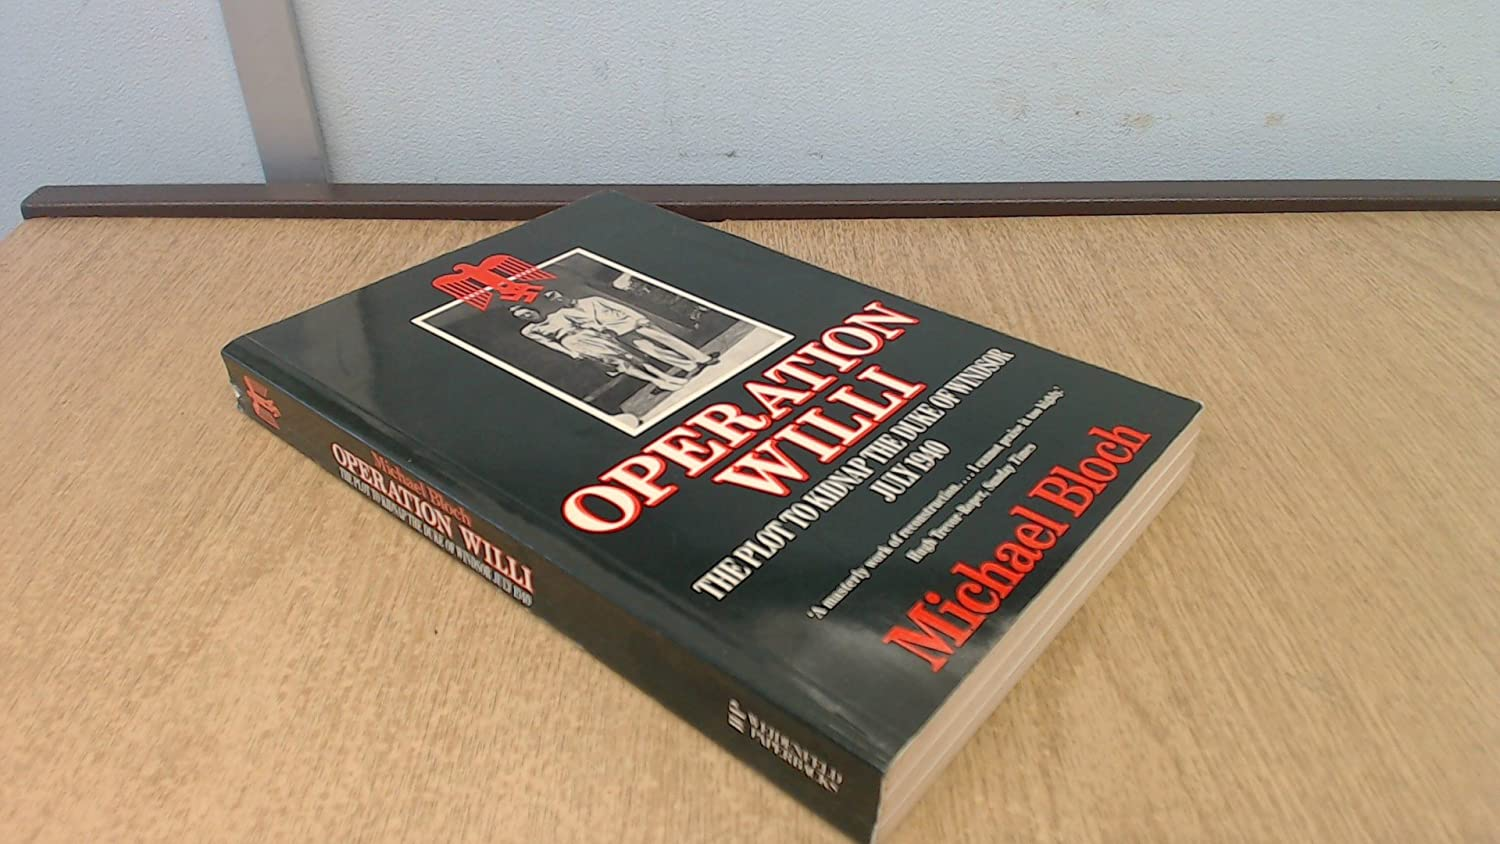 Operation Willi: The Plot to Kidnap the Duke of Windsor, July 1940